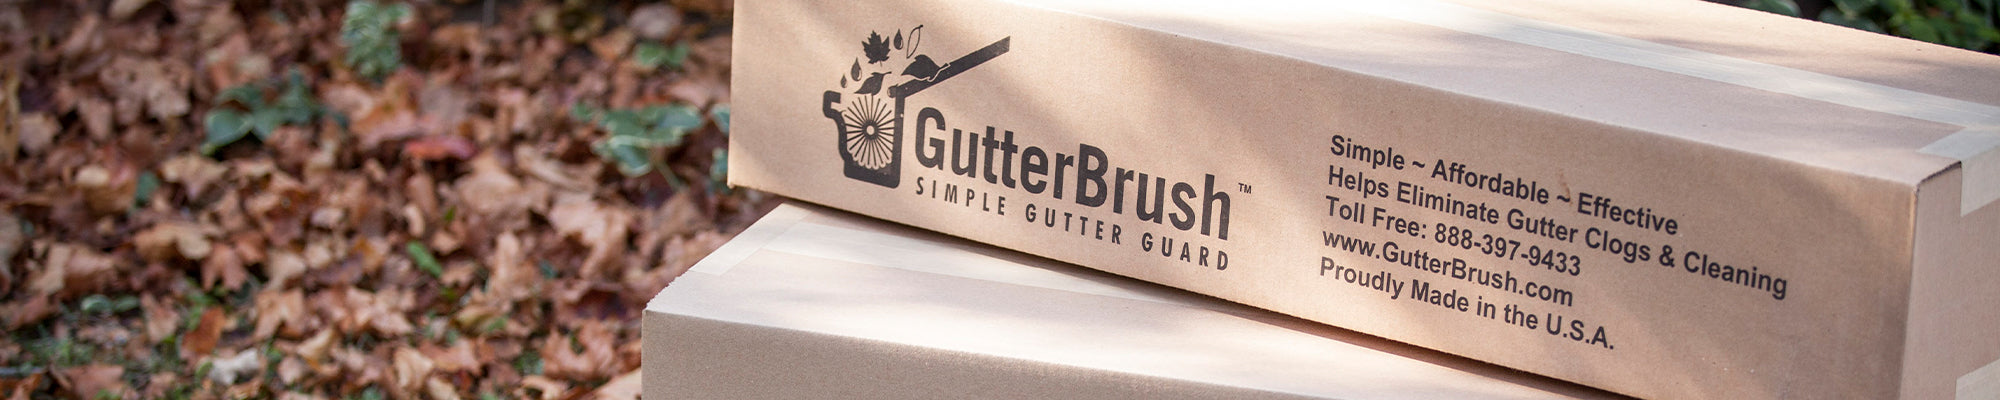 GutterBrush Product Comparison